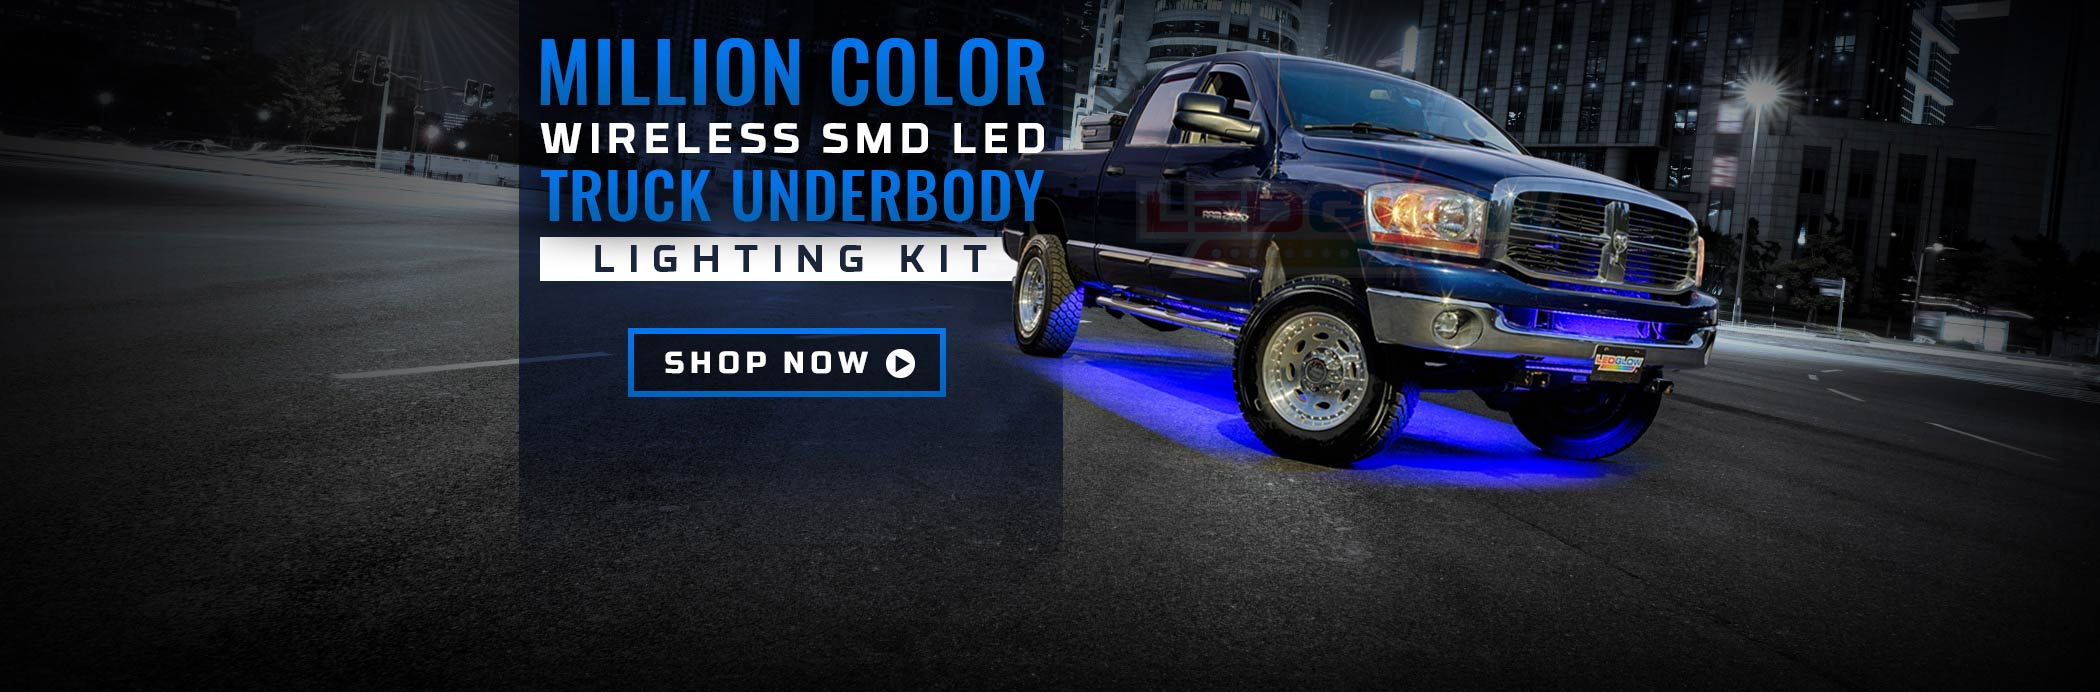 Million Color Wireless SMD Truck Underbody Lighting Kit